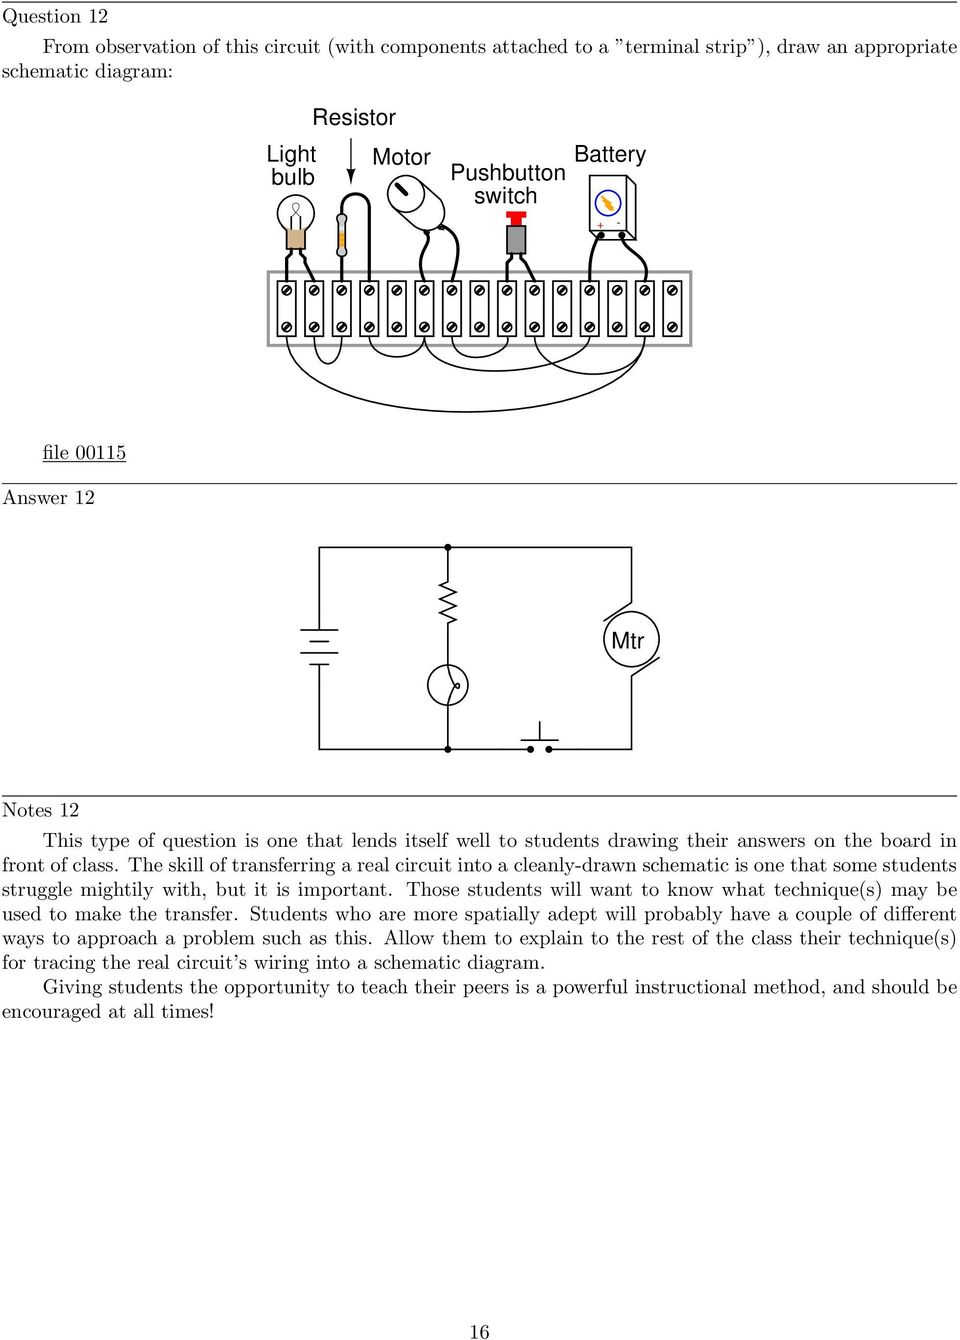 Series Parallel Dc Circuits Pdf Circuit A Resistance And Lamps May Be Connected In The Skill Of Transferring Real Into Cleanly Drawn Schematic Is One That